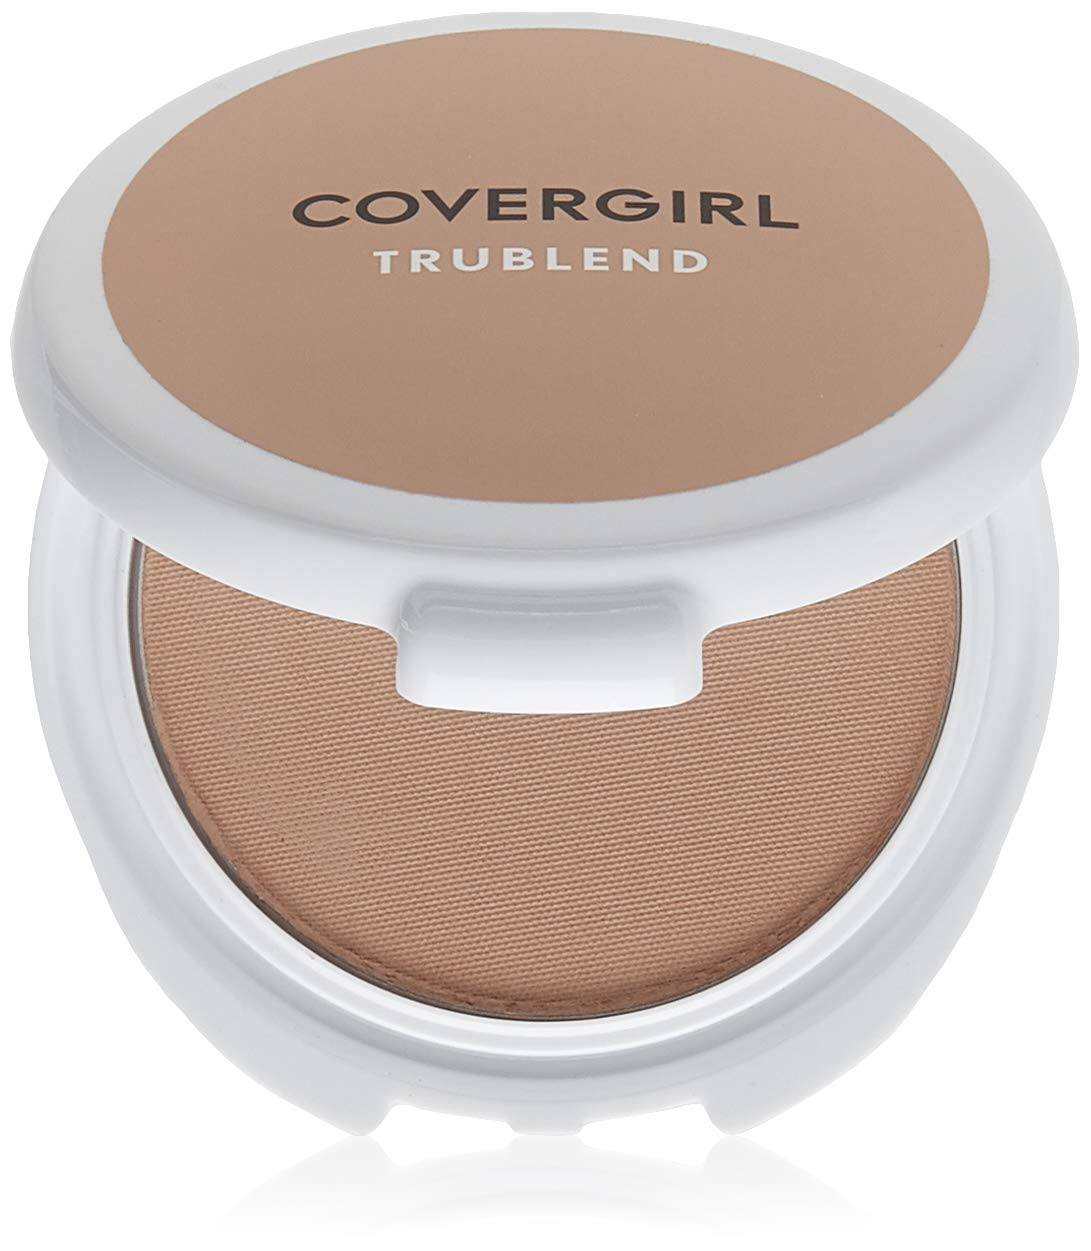 CoverGirl TruBlend Mineral Pressed Powder, Translucent Honey 0.39 oz